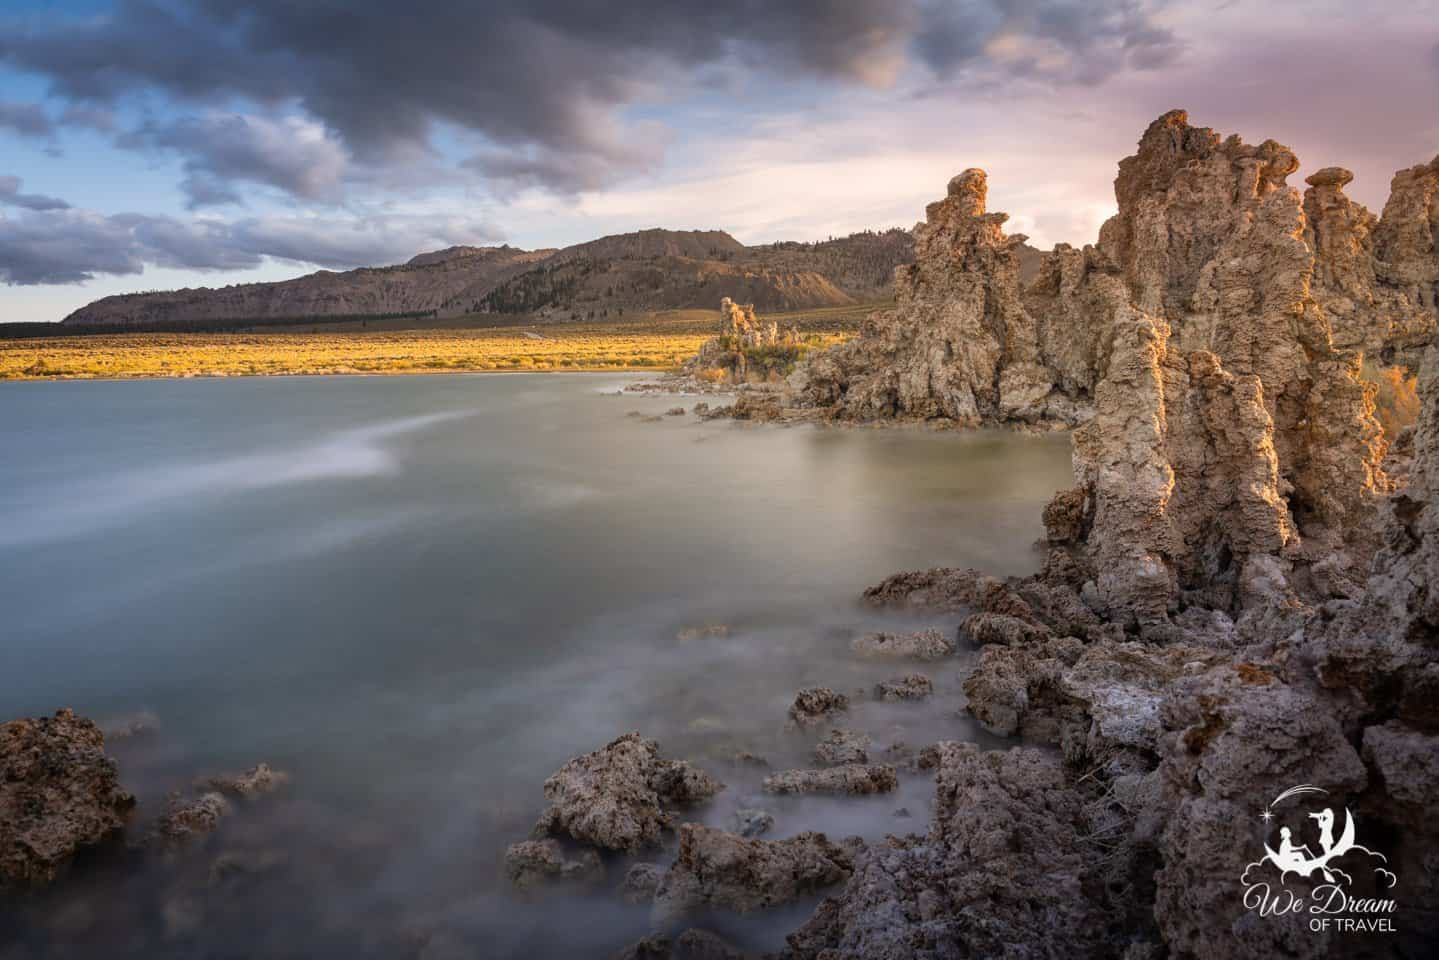 Using a long exposure to calm the waters and enhance the mood at Mono Lake.